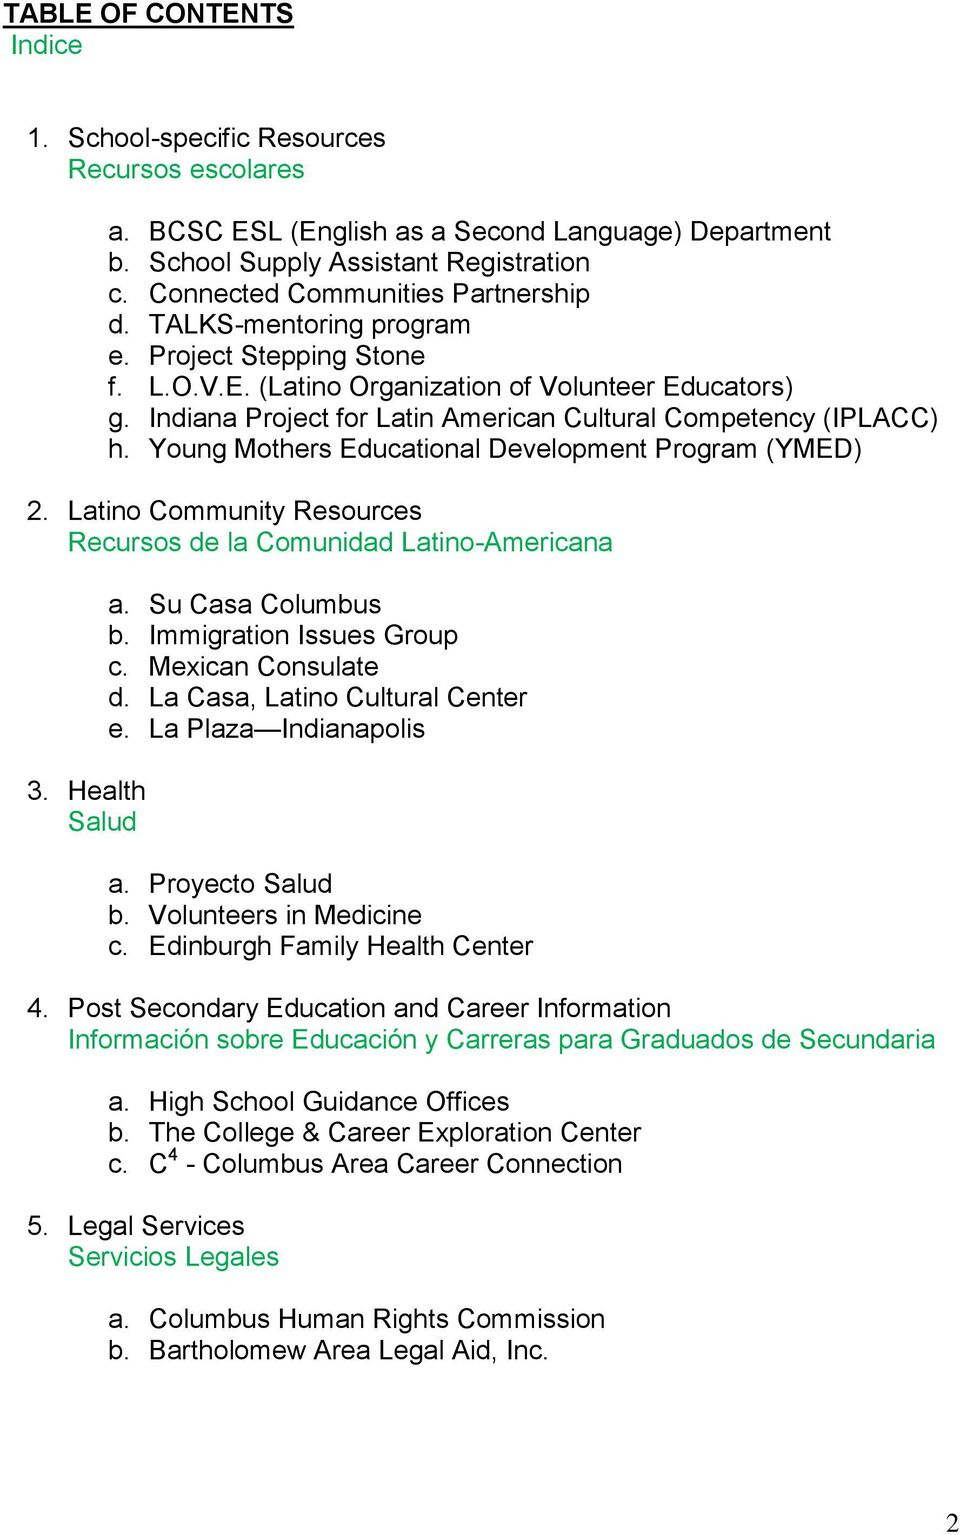 Indiana Project for Latin American Cultural Competency (IPLACC) h. Young Mothers Educational Development Program (YMED) 2. Latino Community Resources Recursos de la Comunidad Latino-Americana 3.